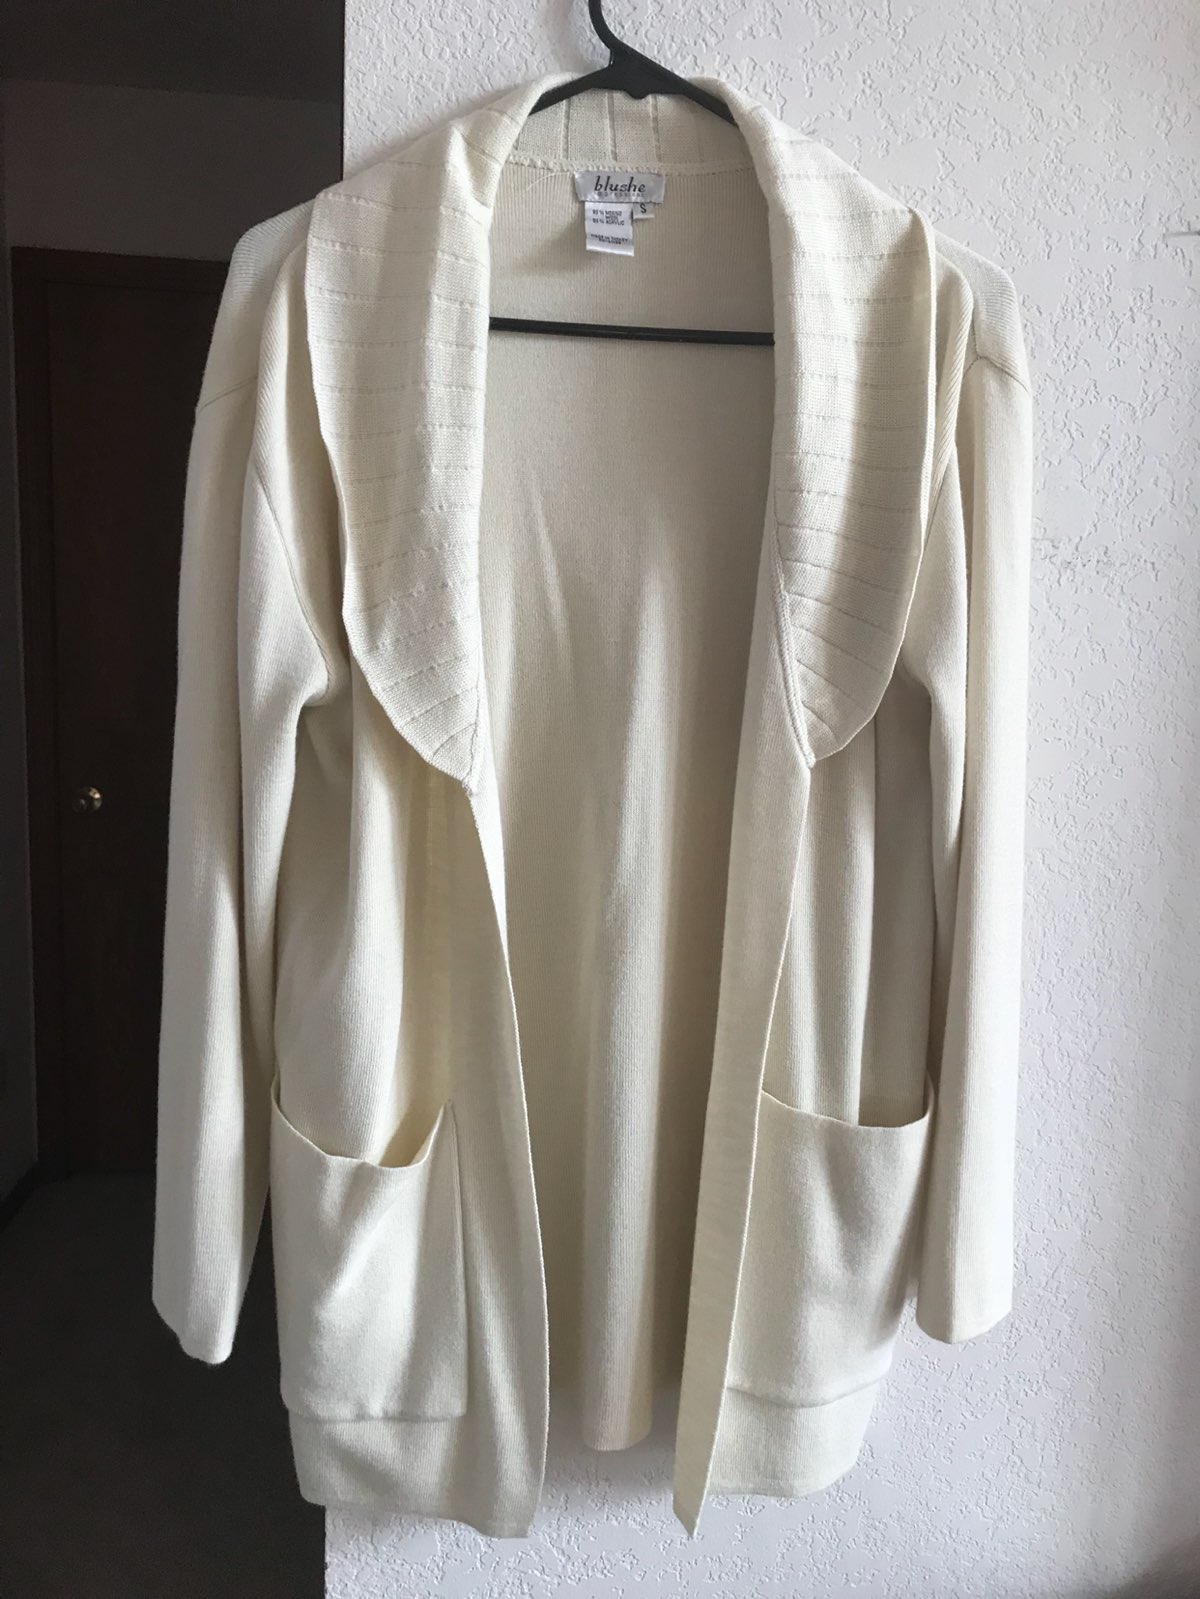 WINTER WHITE POCKETED LONG CARDIGAN - Mercari: BUY & SELL THINGS ...